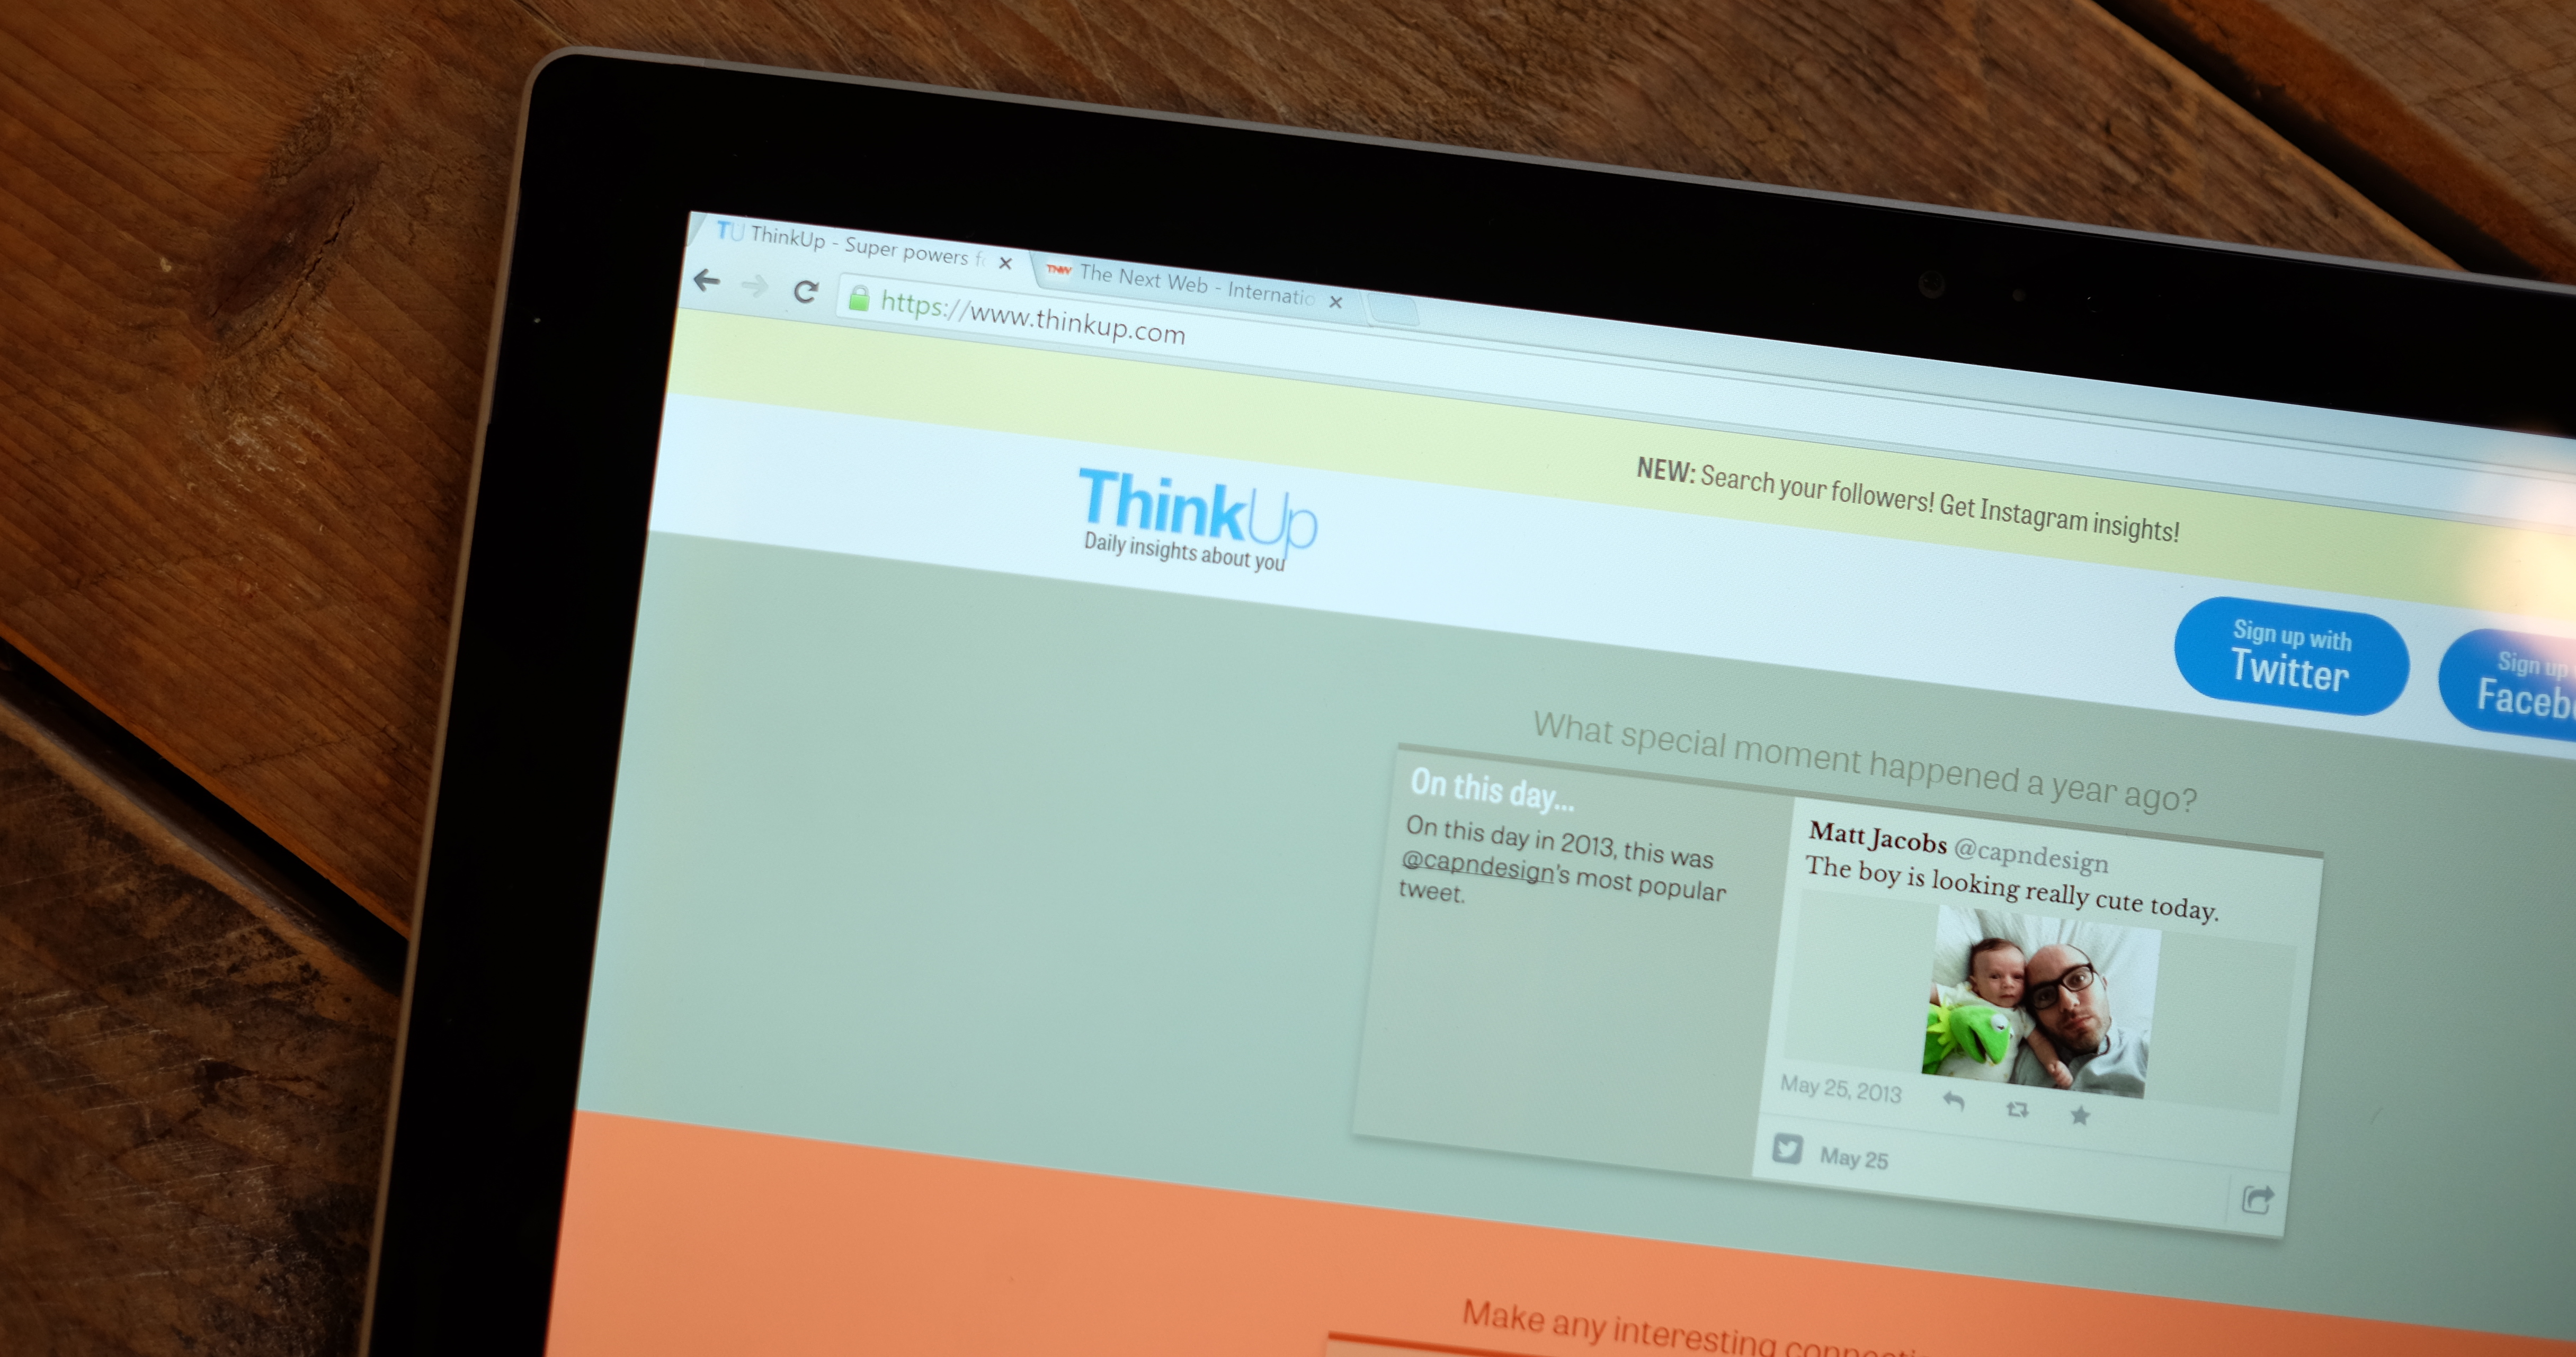 ThinkUp adds Instagram support, search for your followers